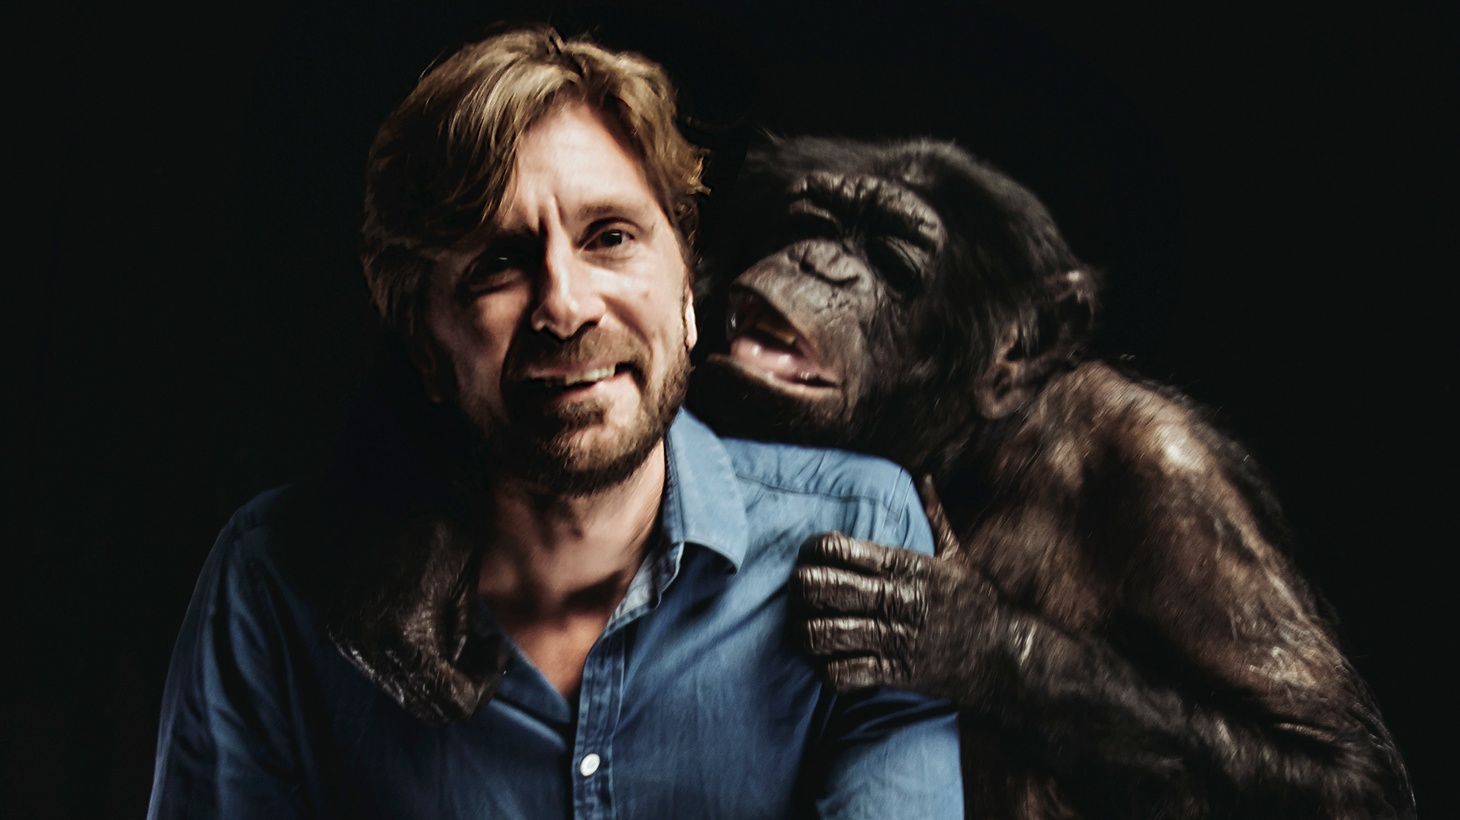 Hollywood chased after Swedish writer-director Ruben Östlund following his well-received 2014 film Force Majeure. But Östlund isn't so sure he wants to be caught. He tells KCRW's Matt Holzman about staying in Scandinavia and his new movie The Square, a satirical dramedy that is his second film selected as Sweden's foreign language submission to the Oscars.